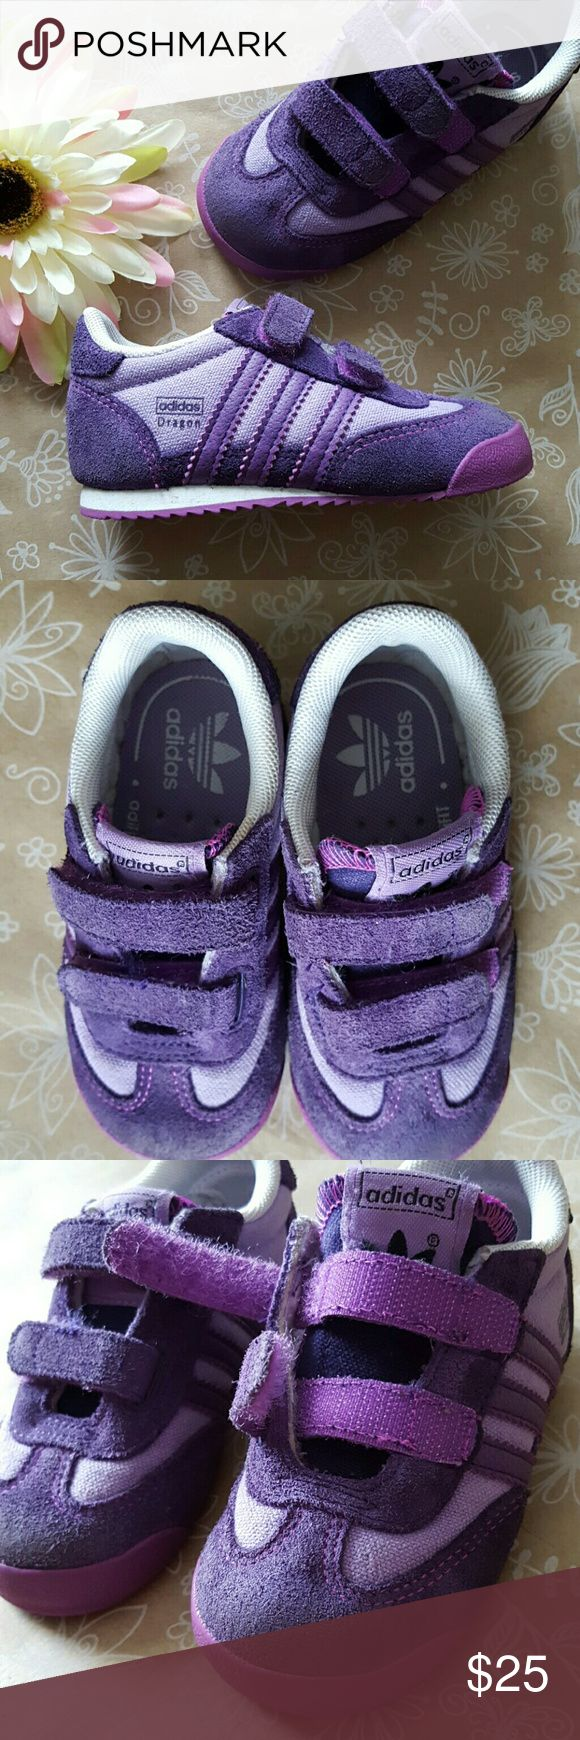 ADIDAS Originals Dragon Sneaker Purple 6 Toddler Excellent Used Condition Adidas Originals Sneakers. Awesome color for purple lovers! Pretty firm on price they're worth it... Adidas Shoes Sneakers